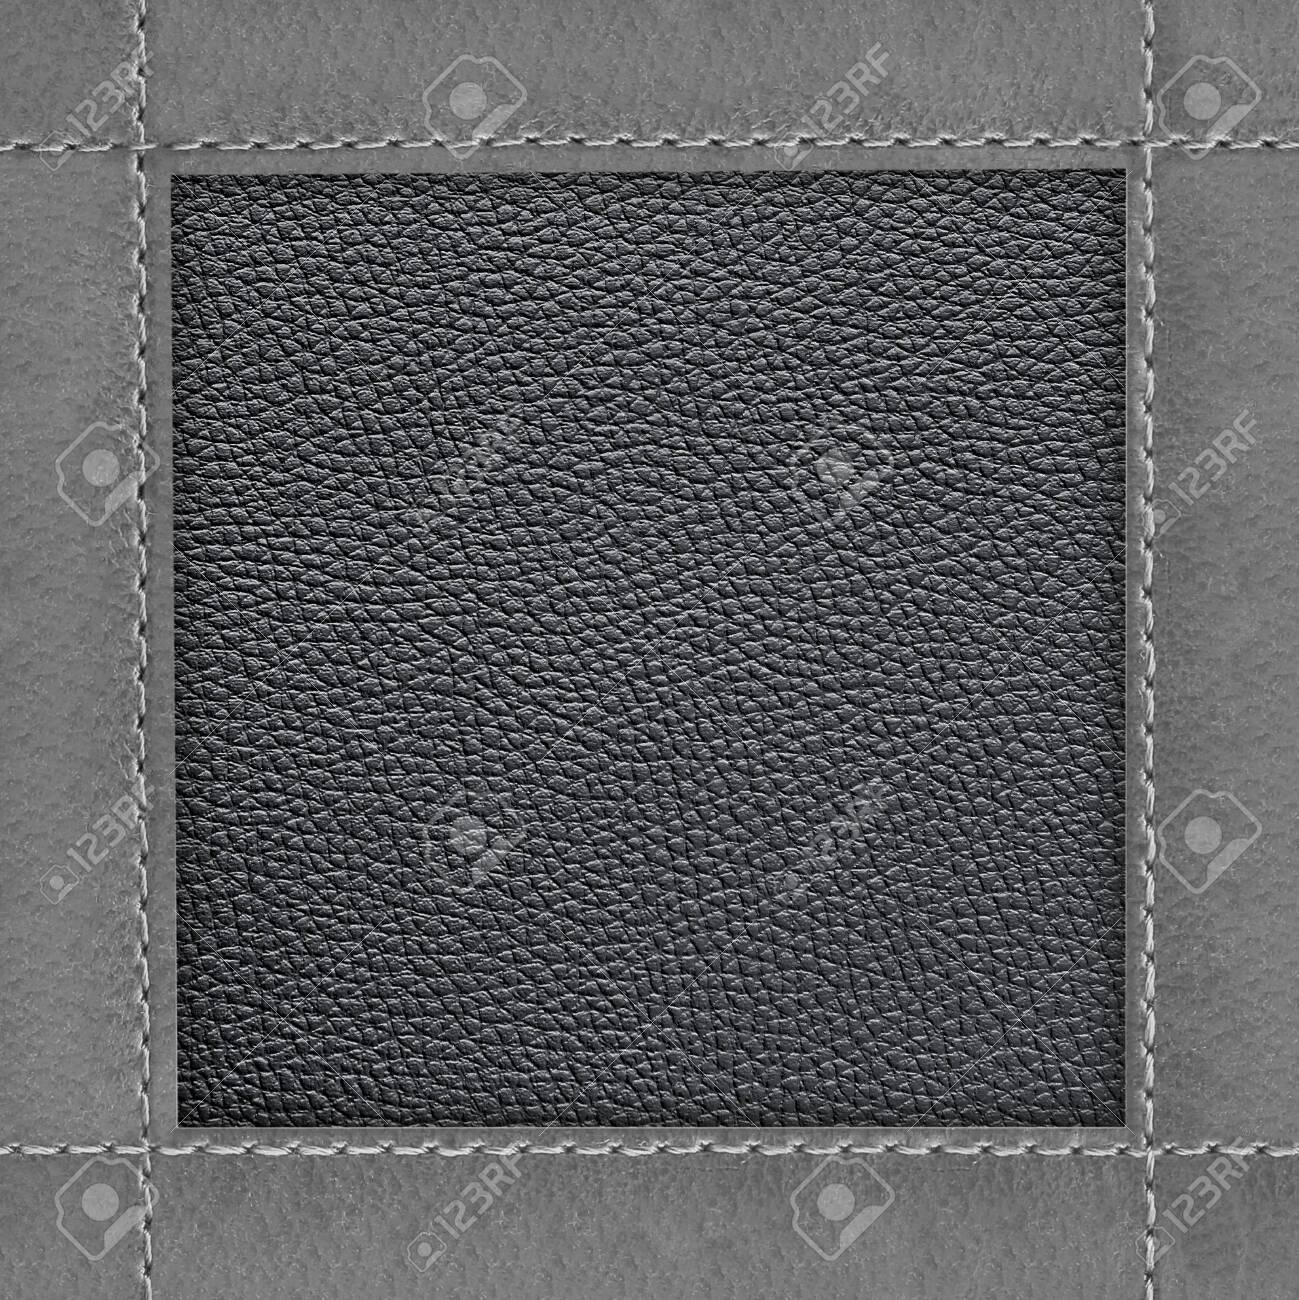 Leather frame of stitched leather texture background - 137329873